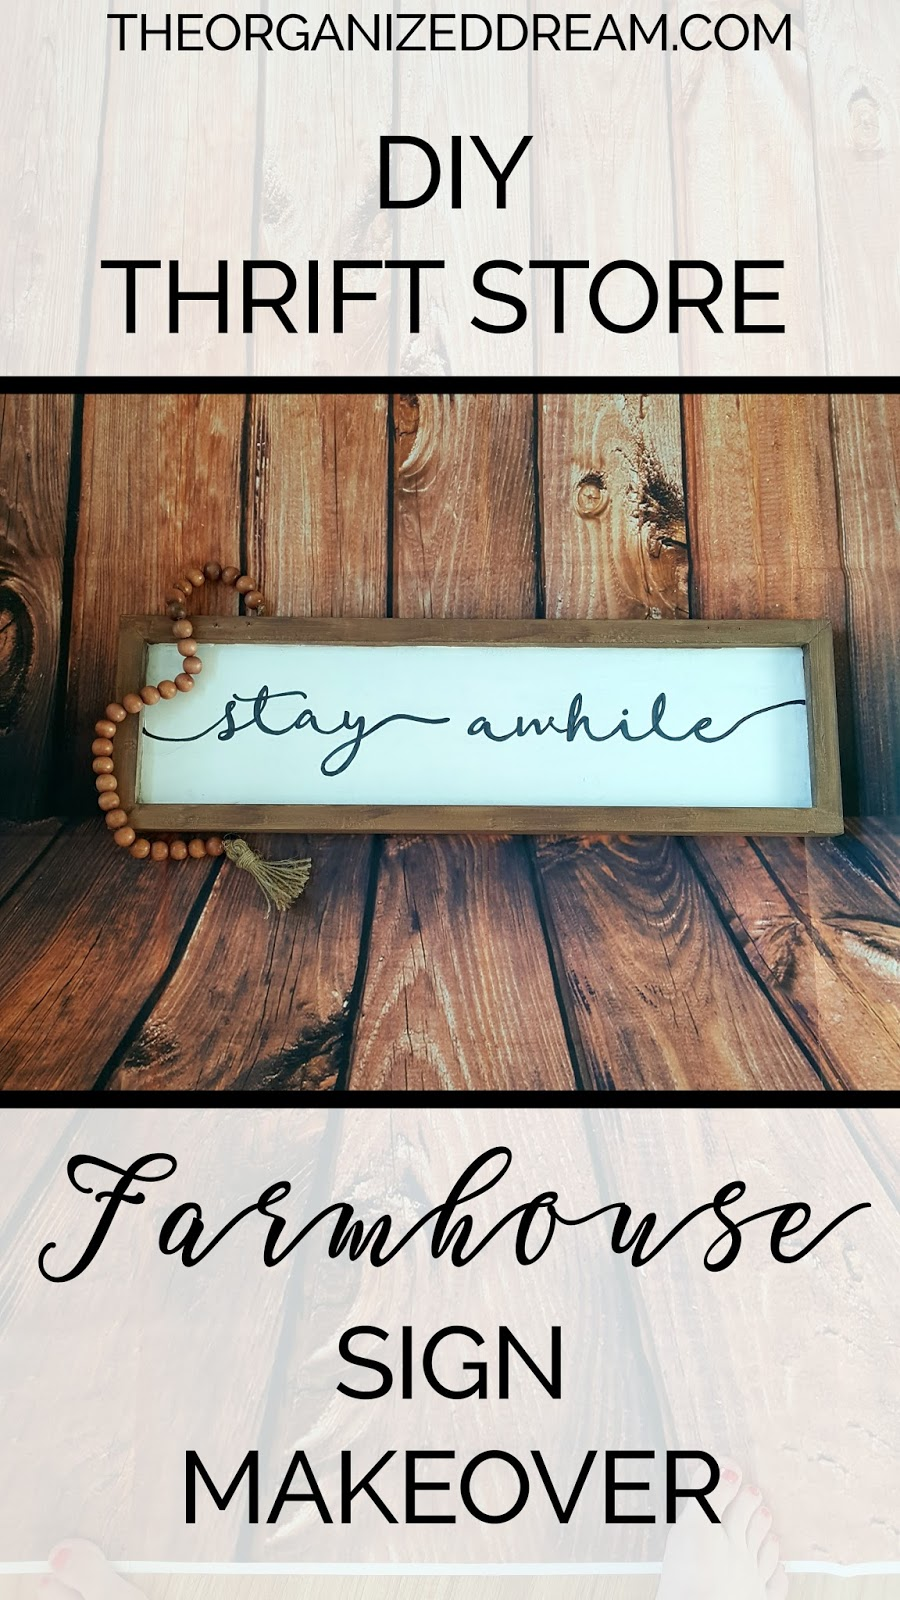 Diy Thrift Store Farmhouse Sign Makeover The Organized Dream